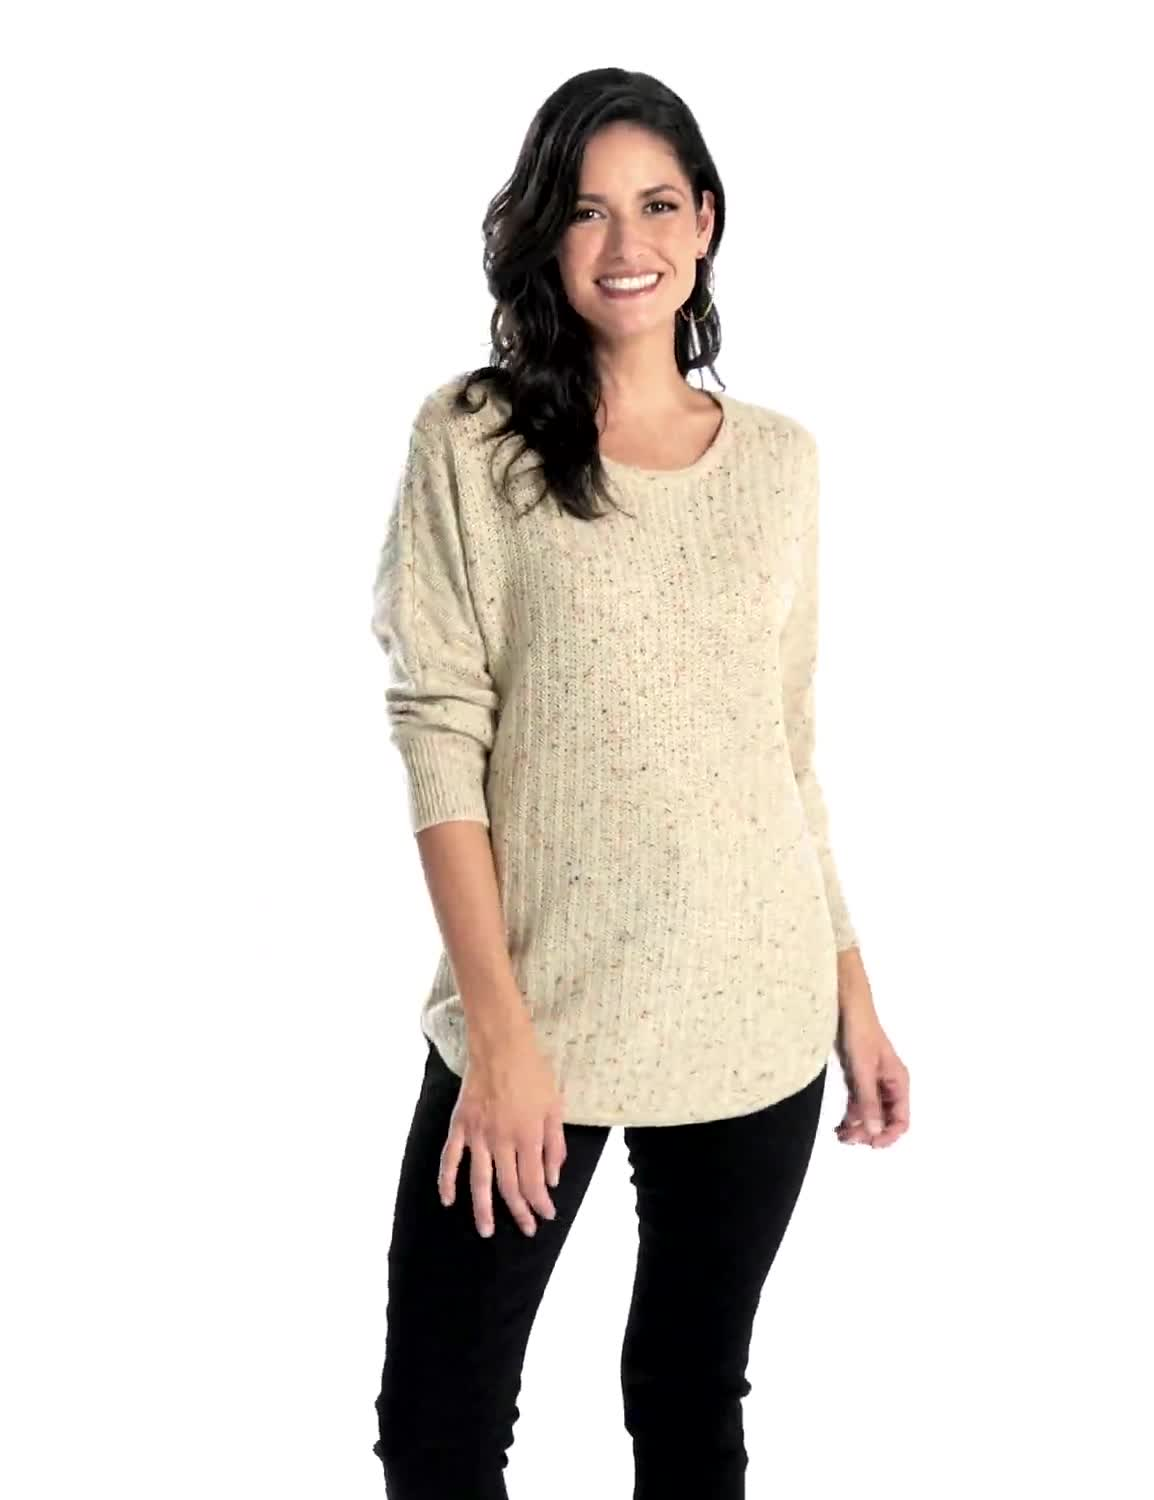 Westport Novelty Yarn Curved Hem Sweater - Misses - Video